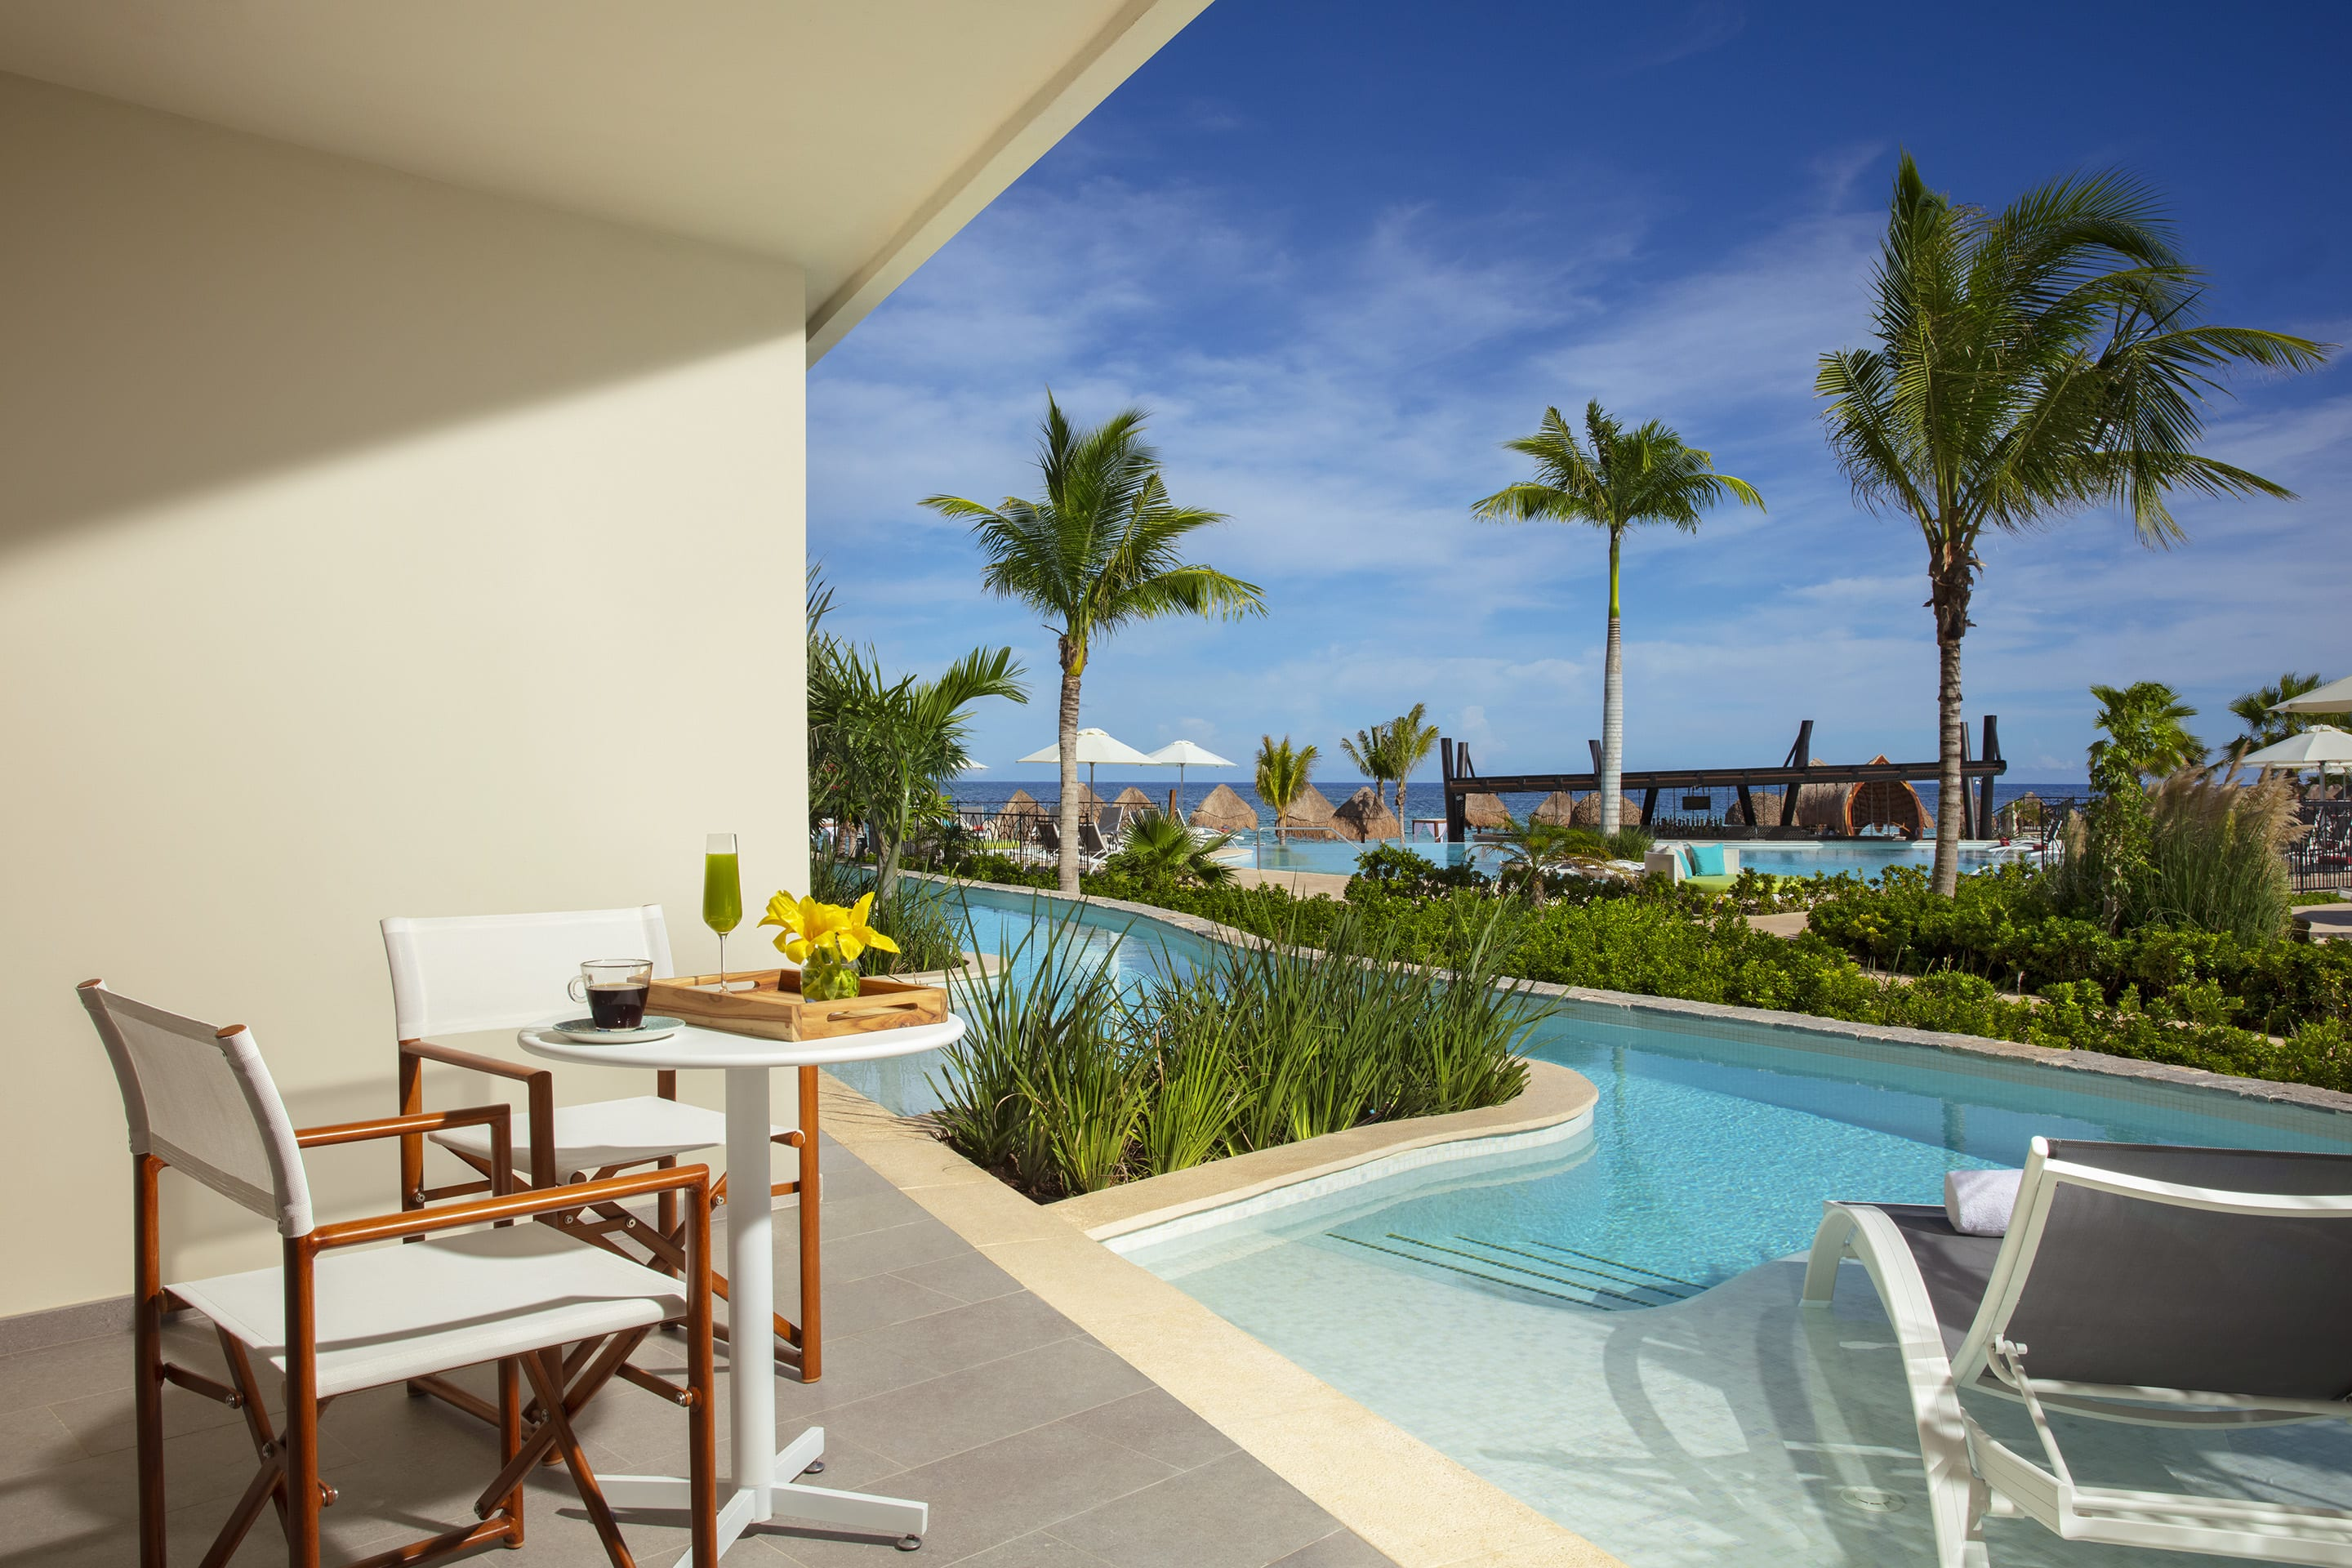 Preferred Club Junior Suite with Swim out Terrace